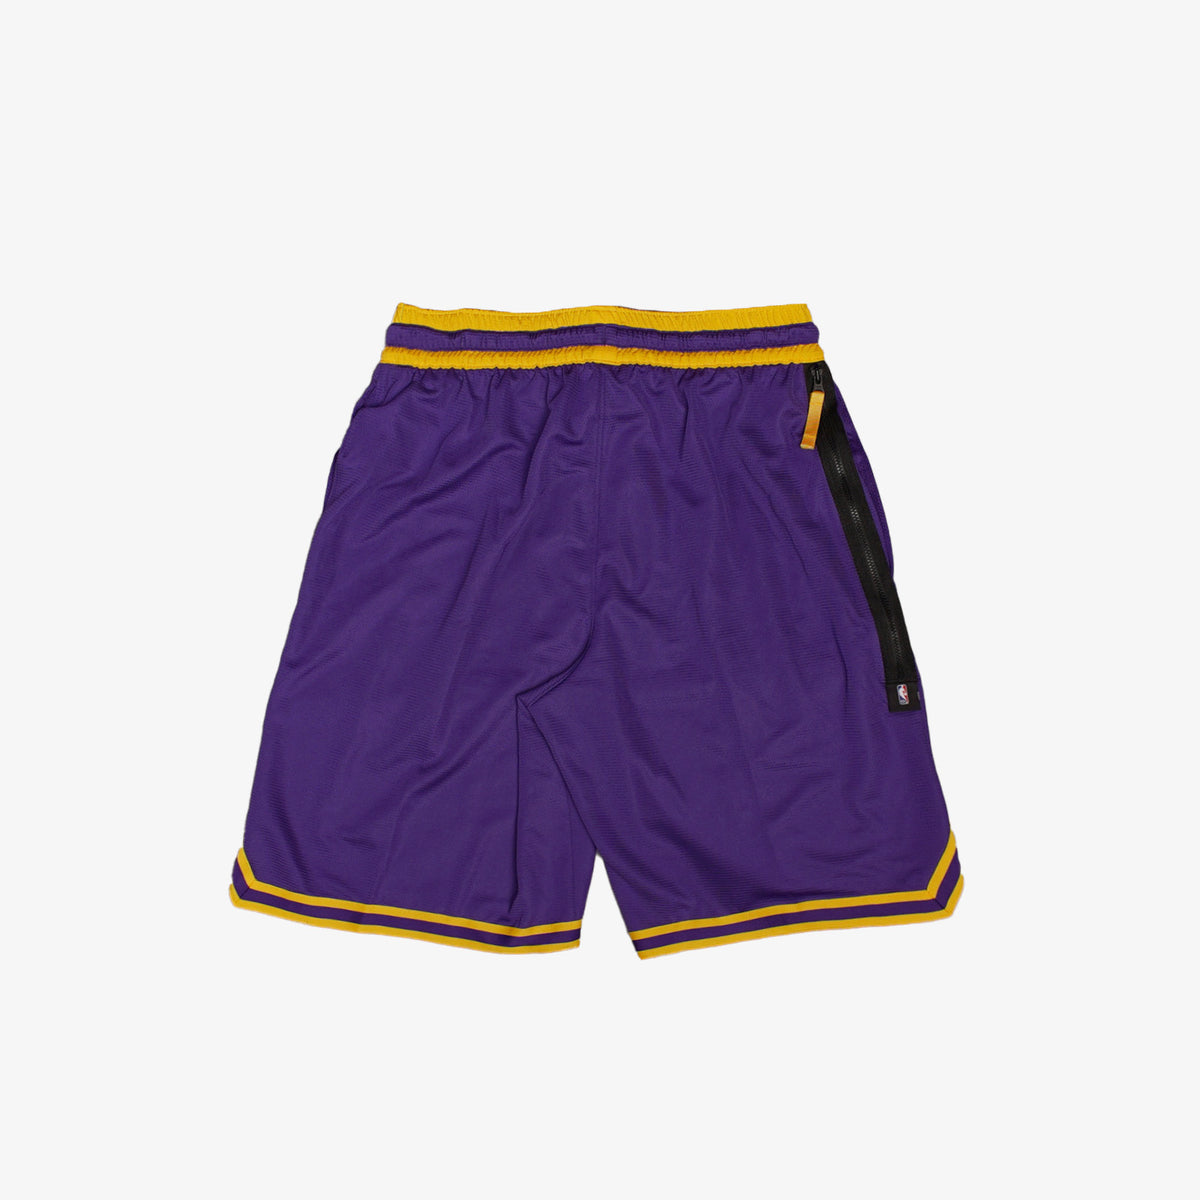 Los Angeles Lakers Courtside DNA Shorts